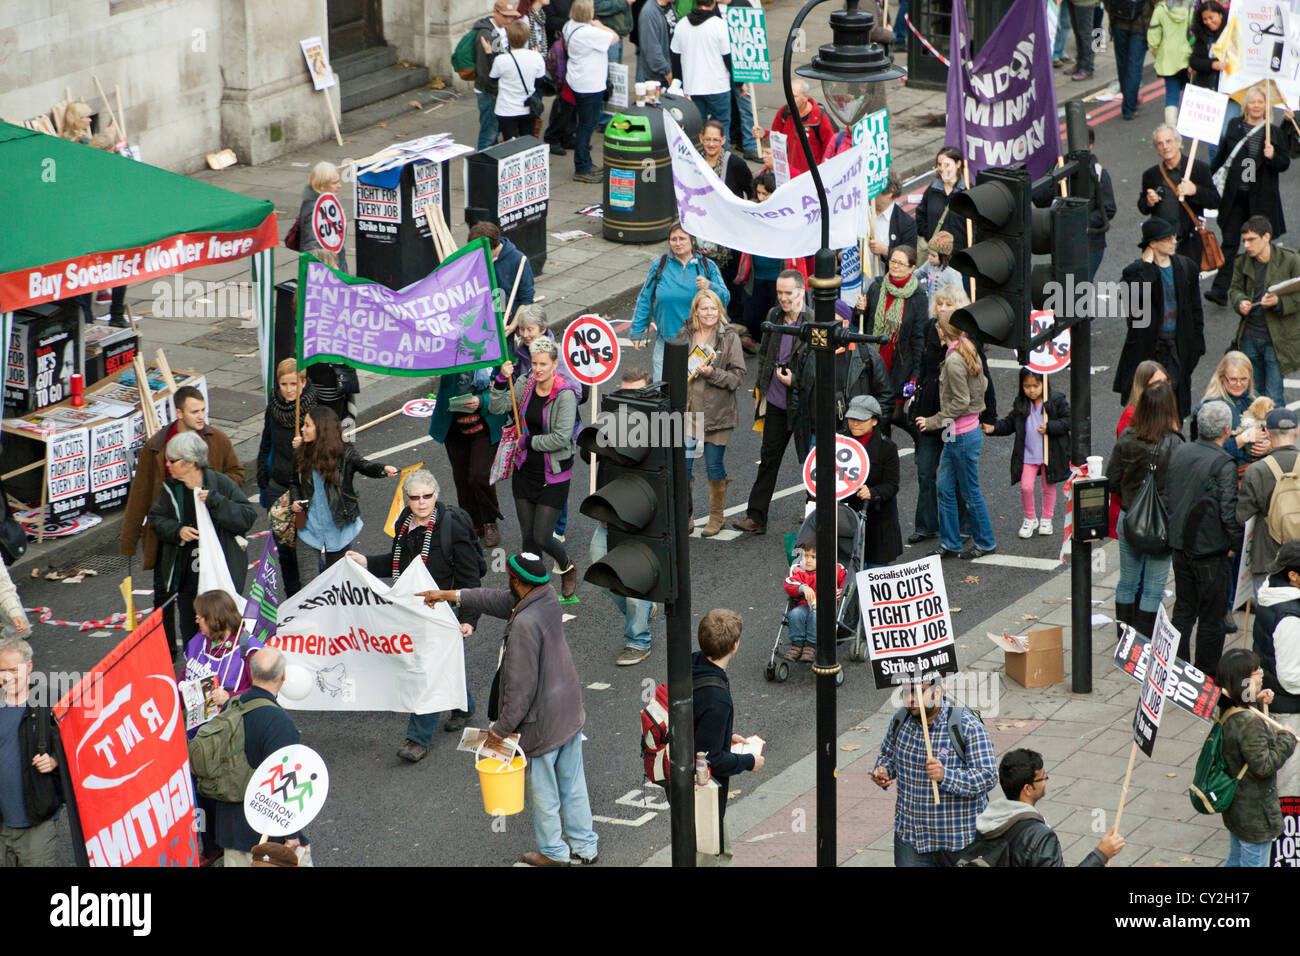 Public service Demonstration against Government cuts in London on 20 October 2012 - Stock Image